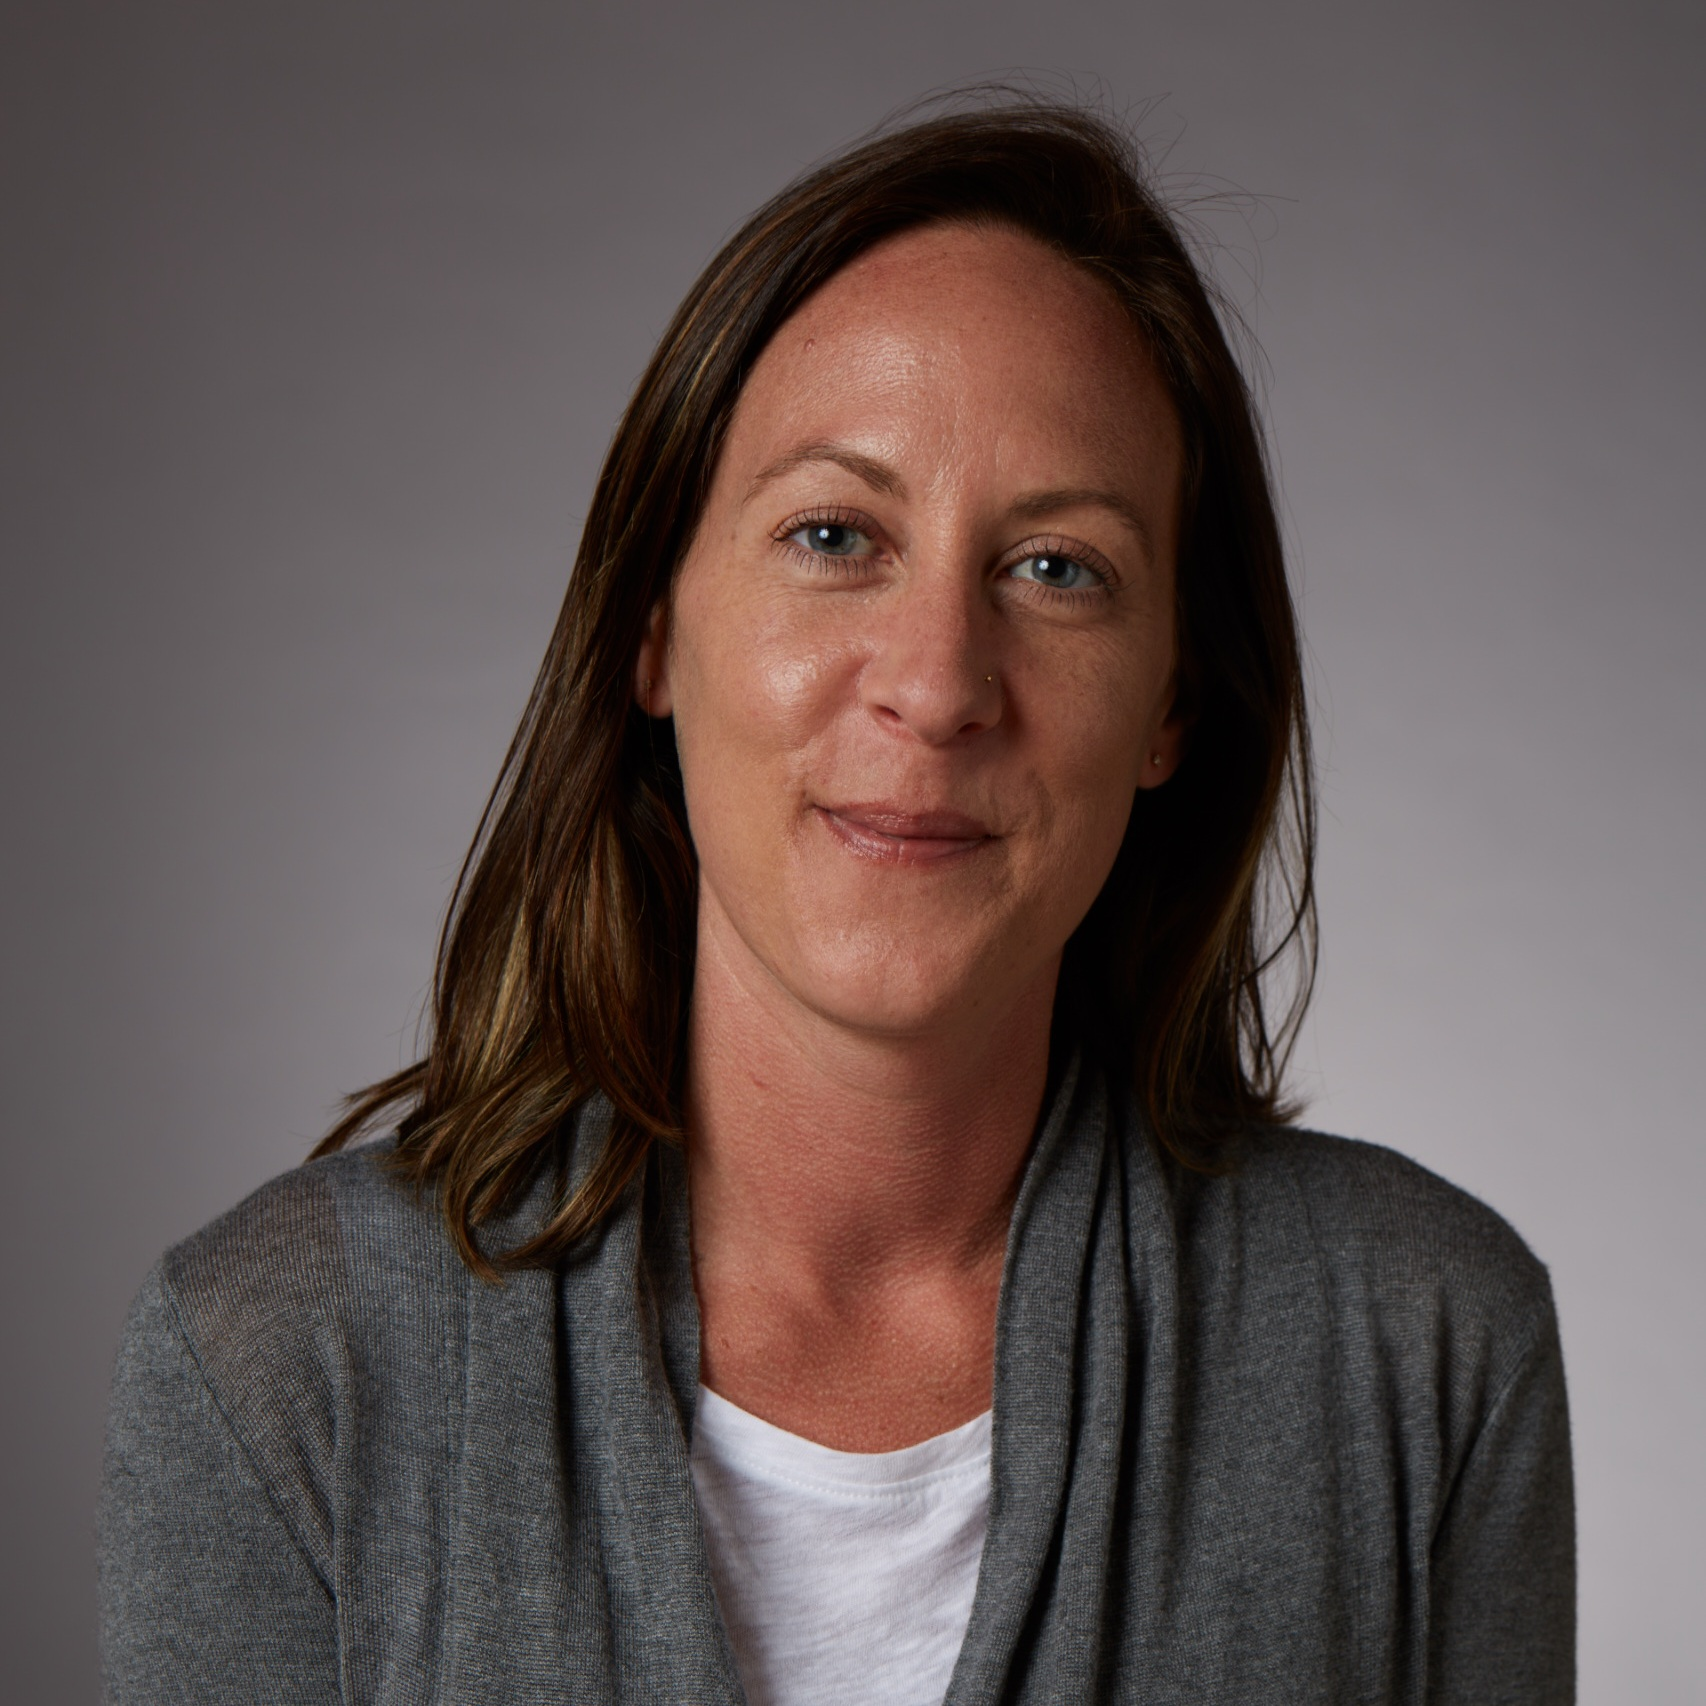 Anjanette Bionda, Payroll, Accounting - a.bionda@hanfordarc.comAnjanette has over 15 years of experience working in Accounting. Working regularly with employees, financial institutions and agencies she has become a crucial member of the Hanford team.